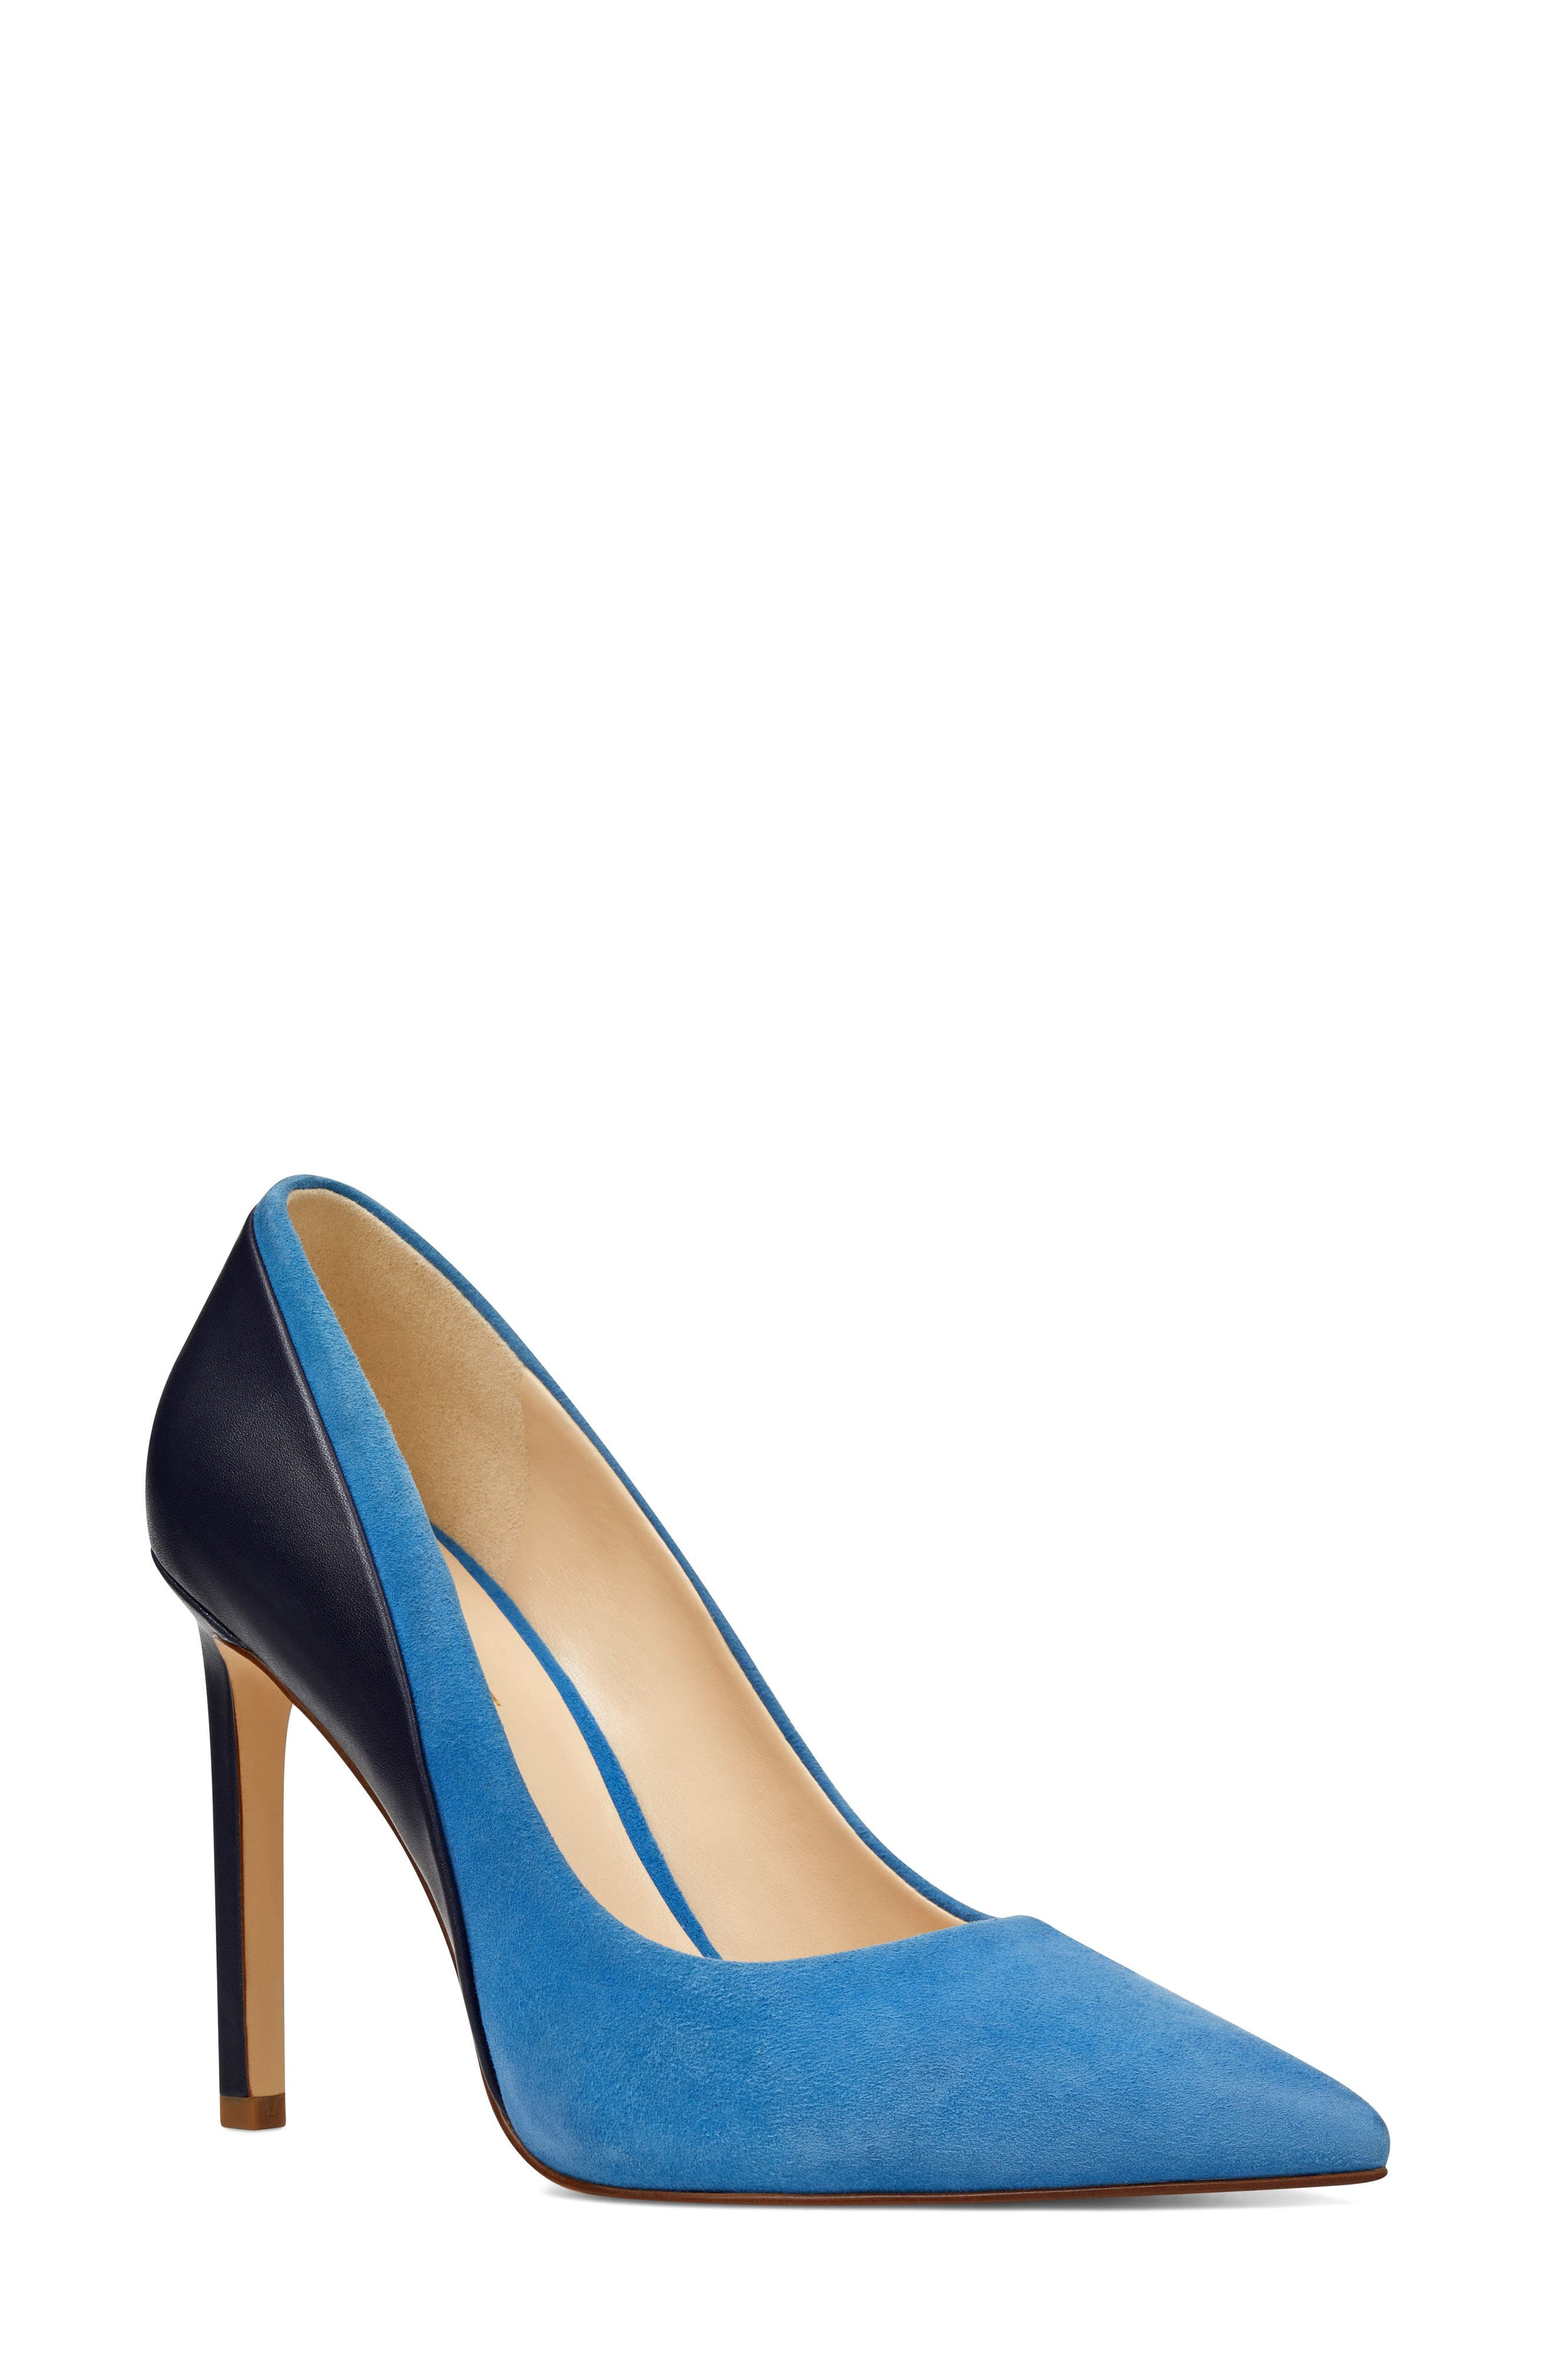 Taymra Pointy Toe Pump,                             Main thumbnail 1, color,                             Blue/ Navy Suede